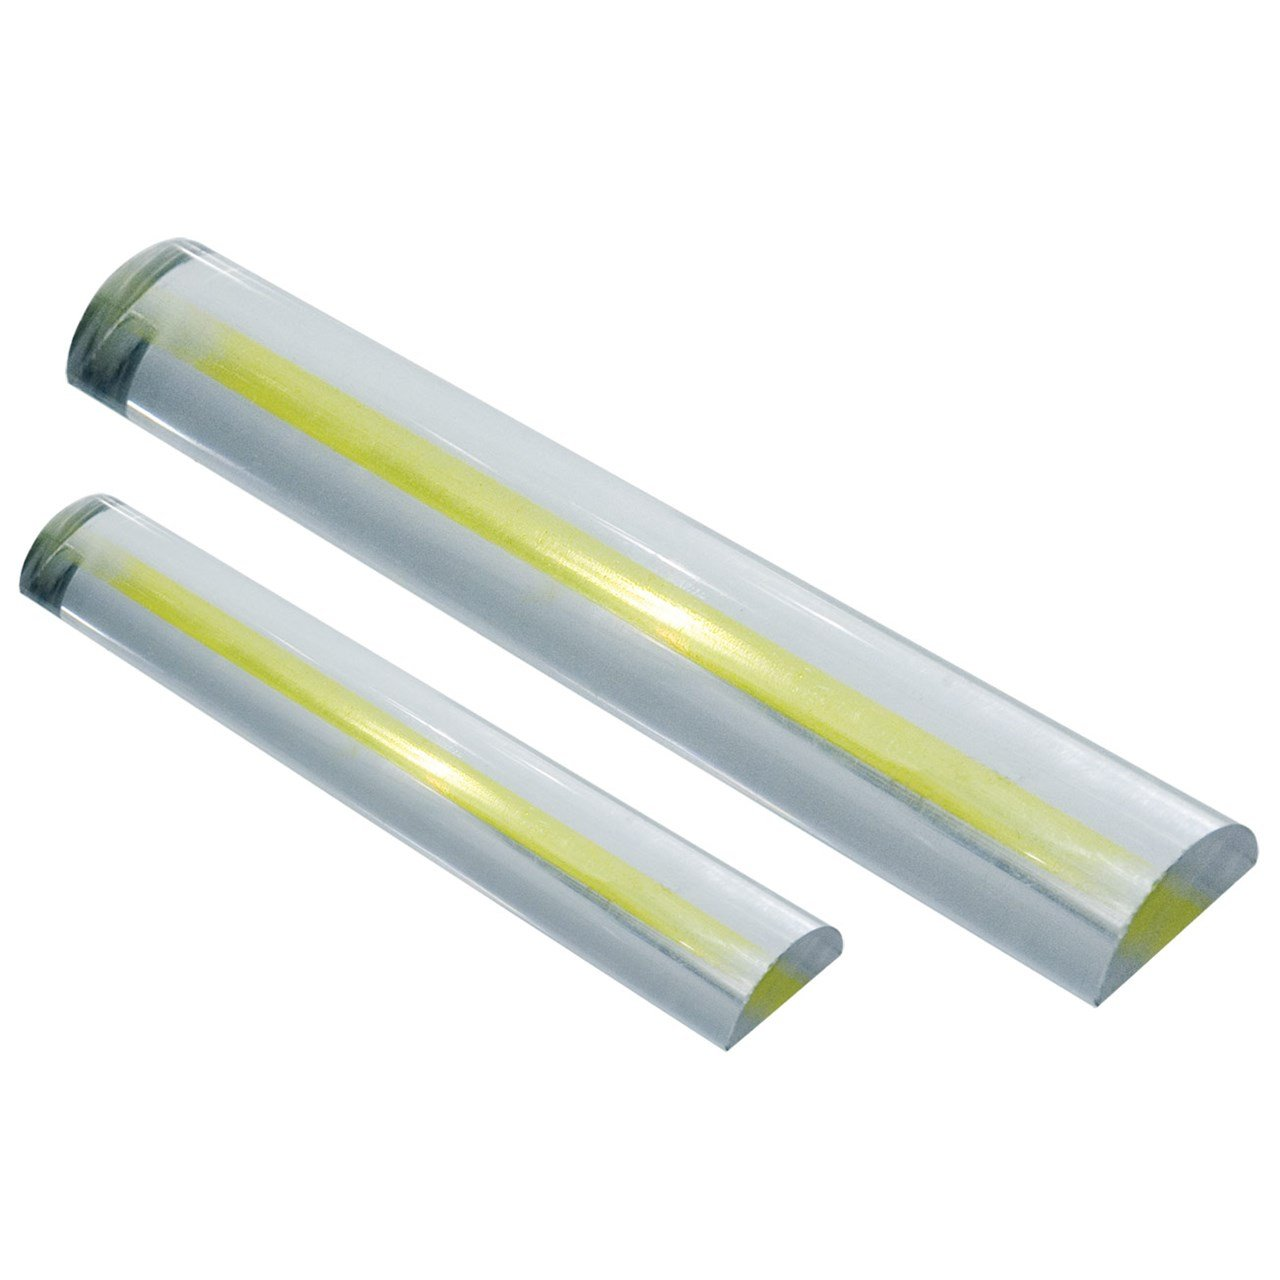 EZ Magnibar with yellow tracker line - Combo - 6 inch and 9 inch by Reizen